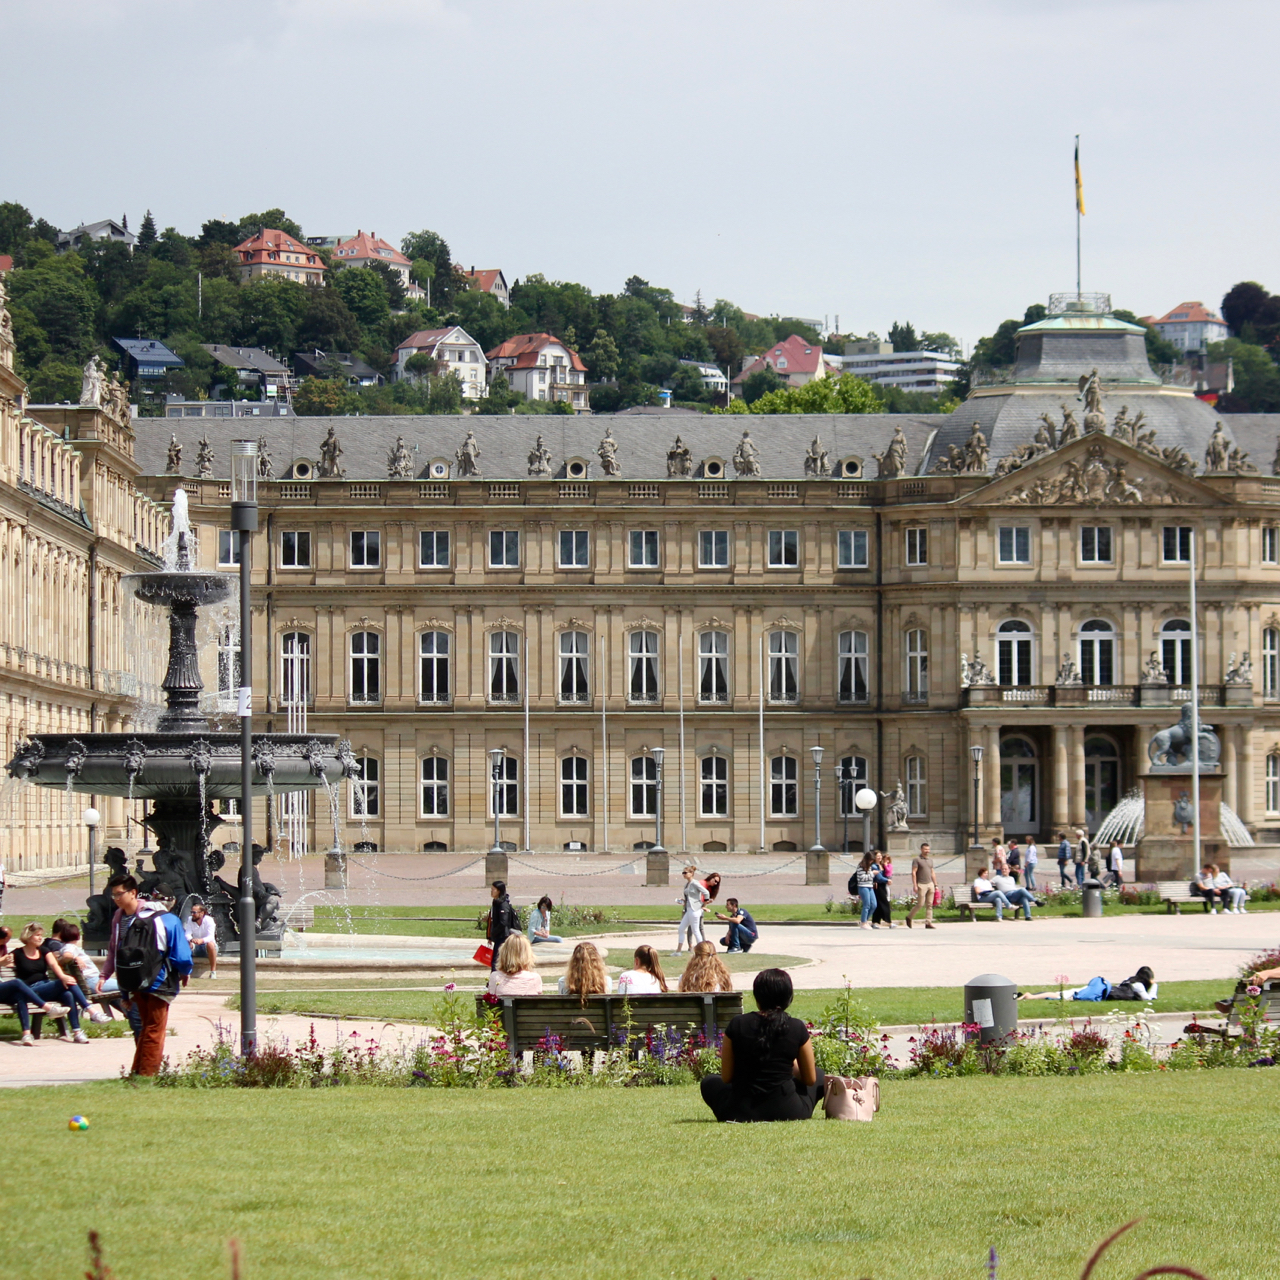 Stuttgart, Germany - 15